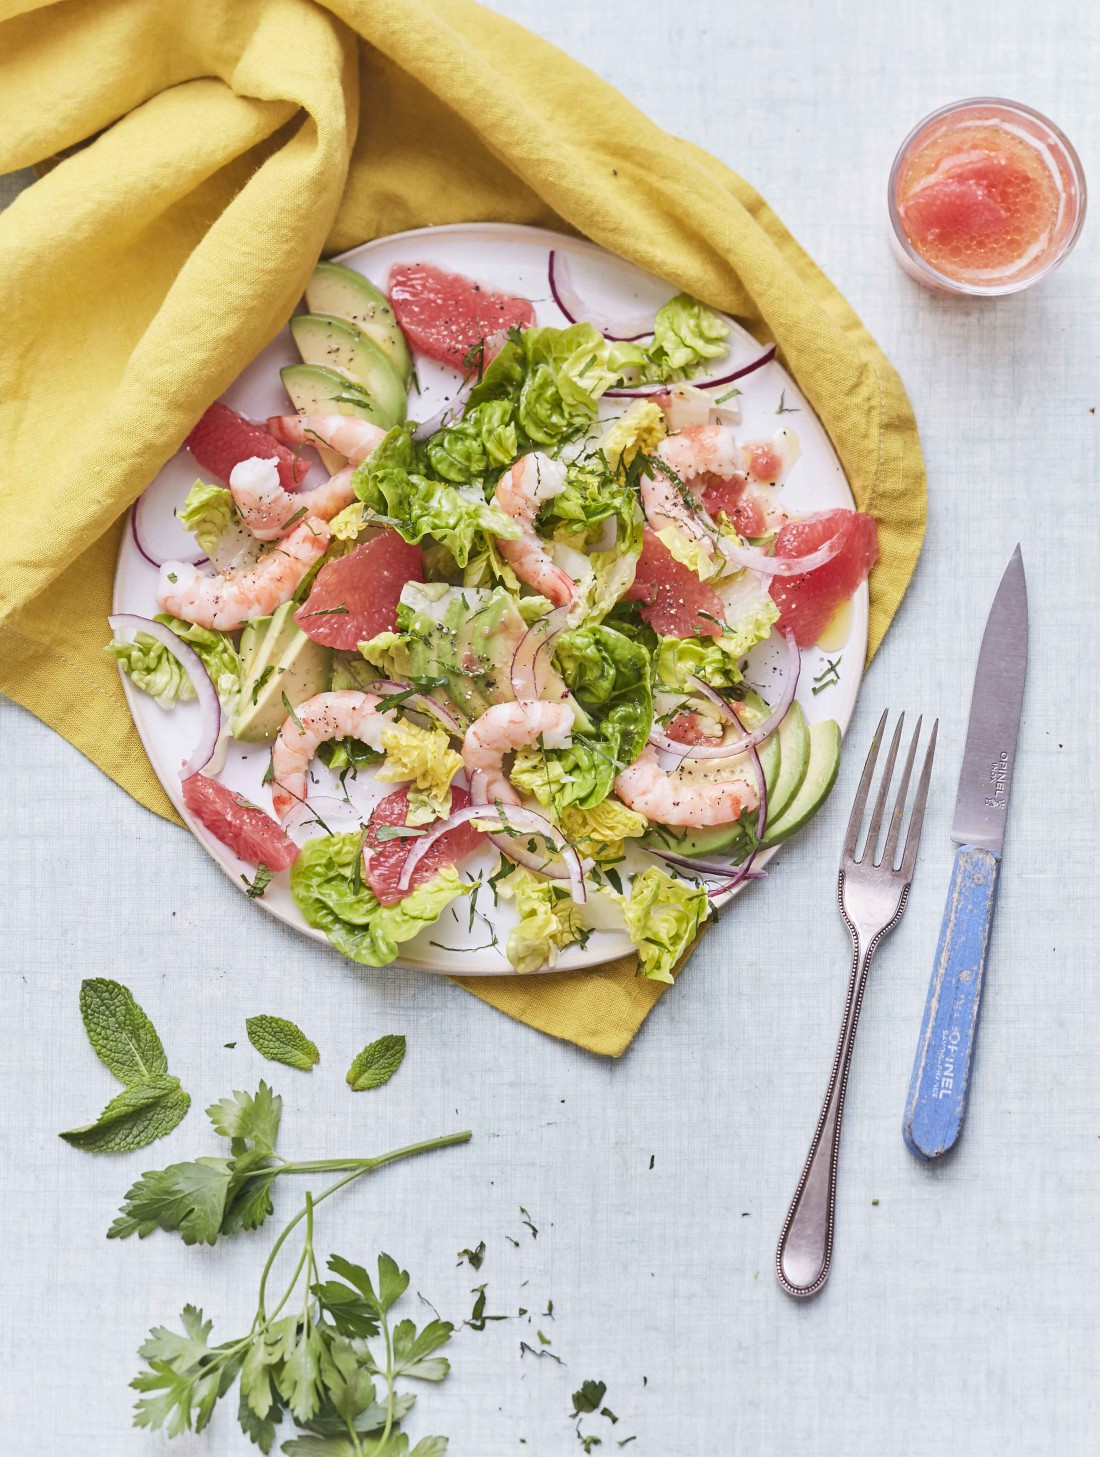 Recette-Salade-Edith